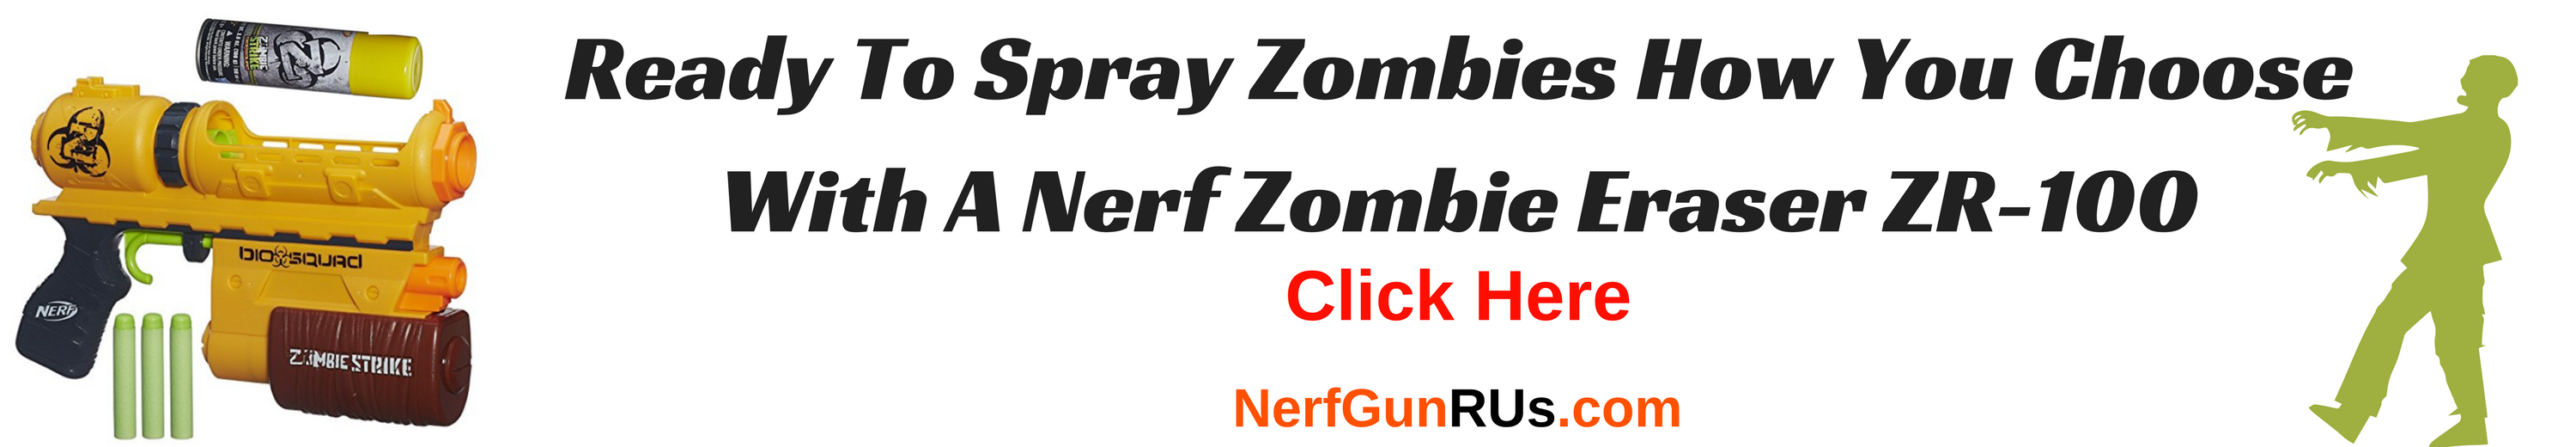 Ready To Spray Zombies How You Choose With A Nerf Zombie Eraser ZR-100